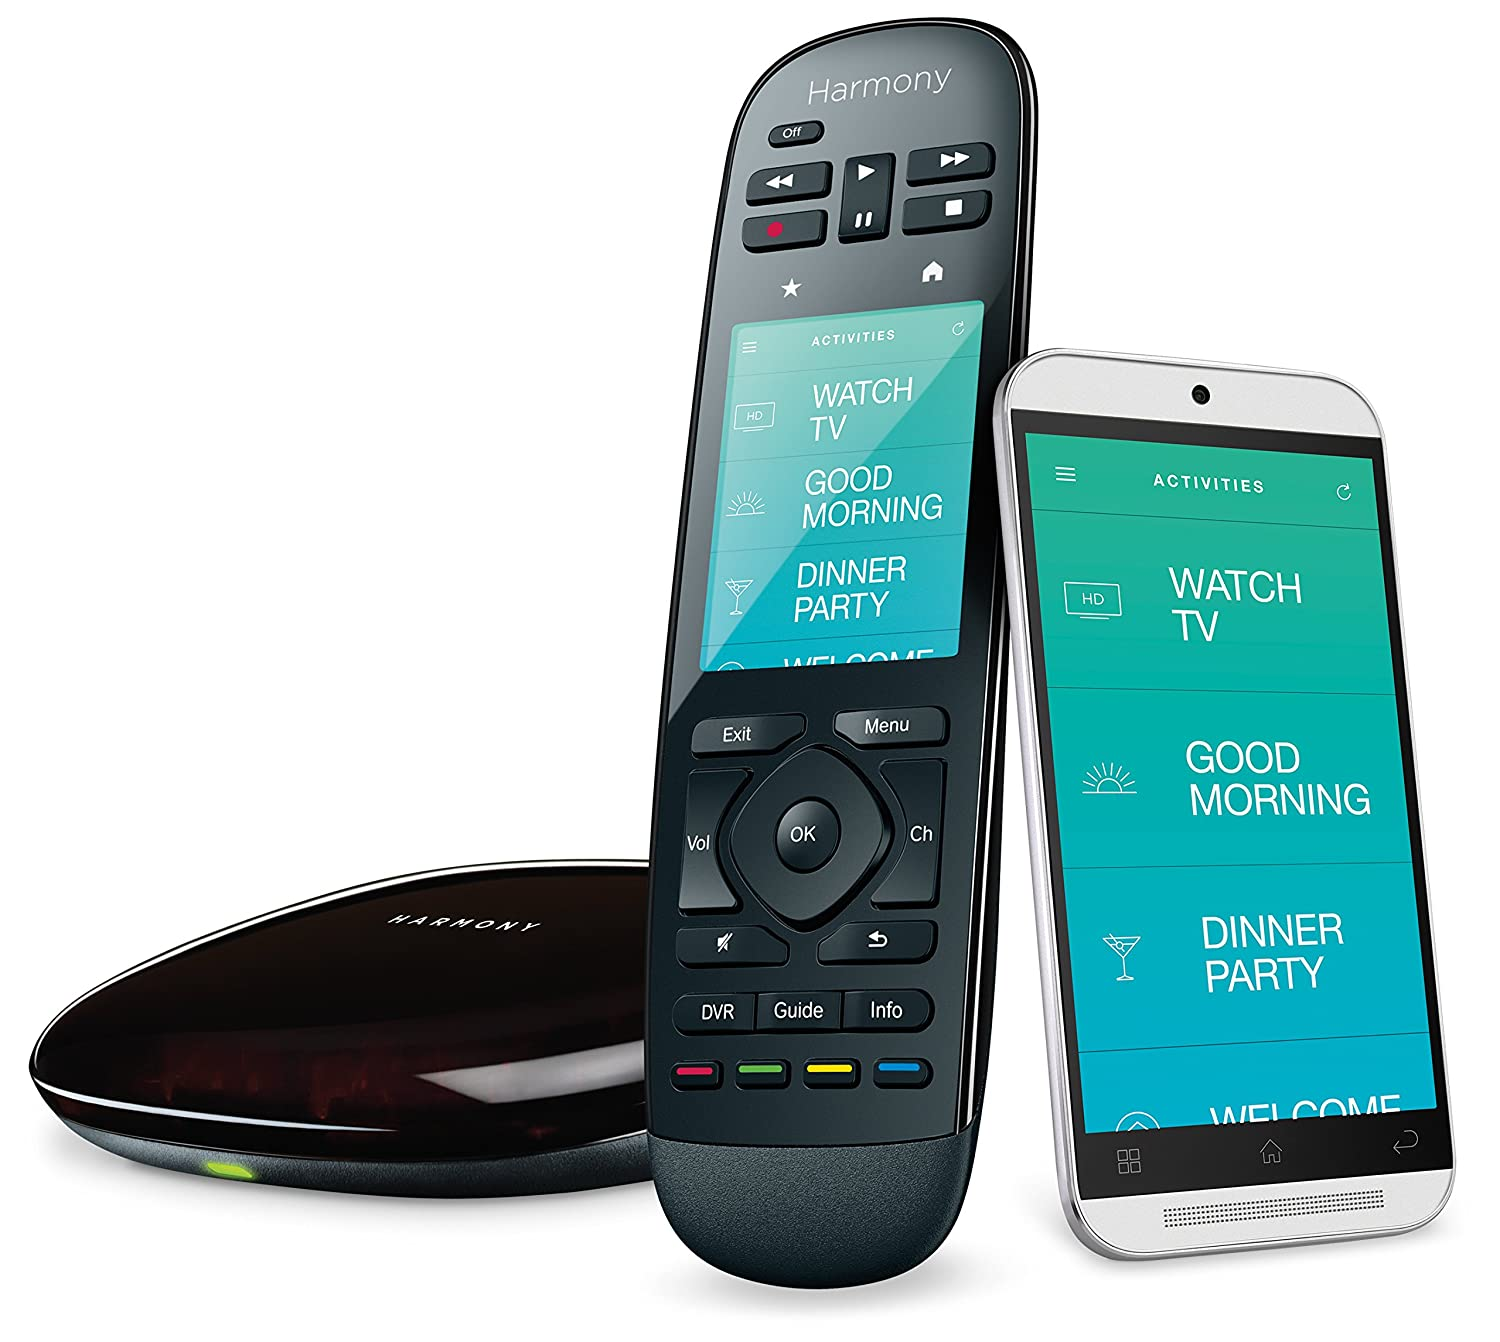 Logitech 915-000237 Harmony Ultimate Home Touch Screen Remote for 15 Home Entertainment and Automation Devices